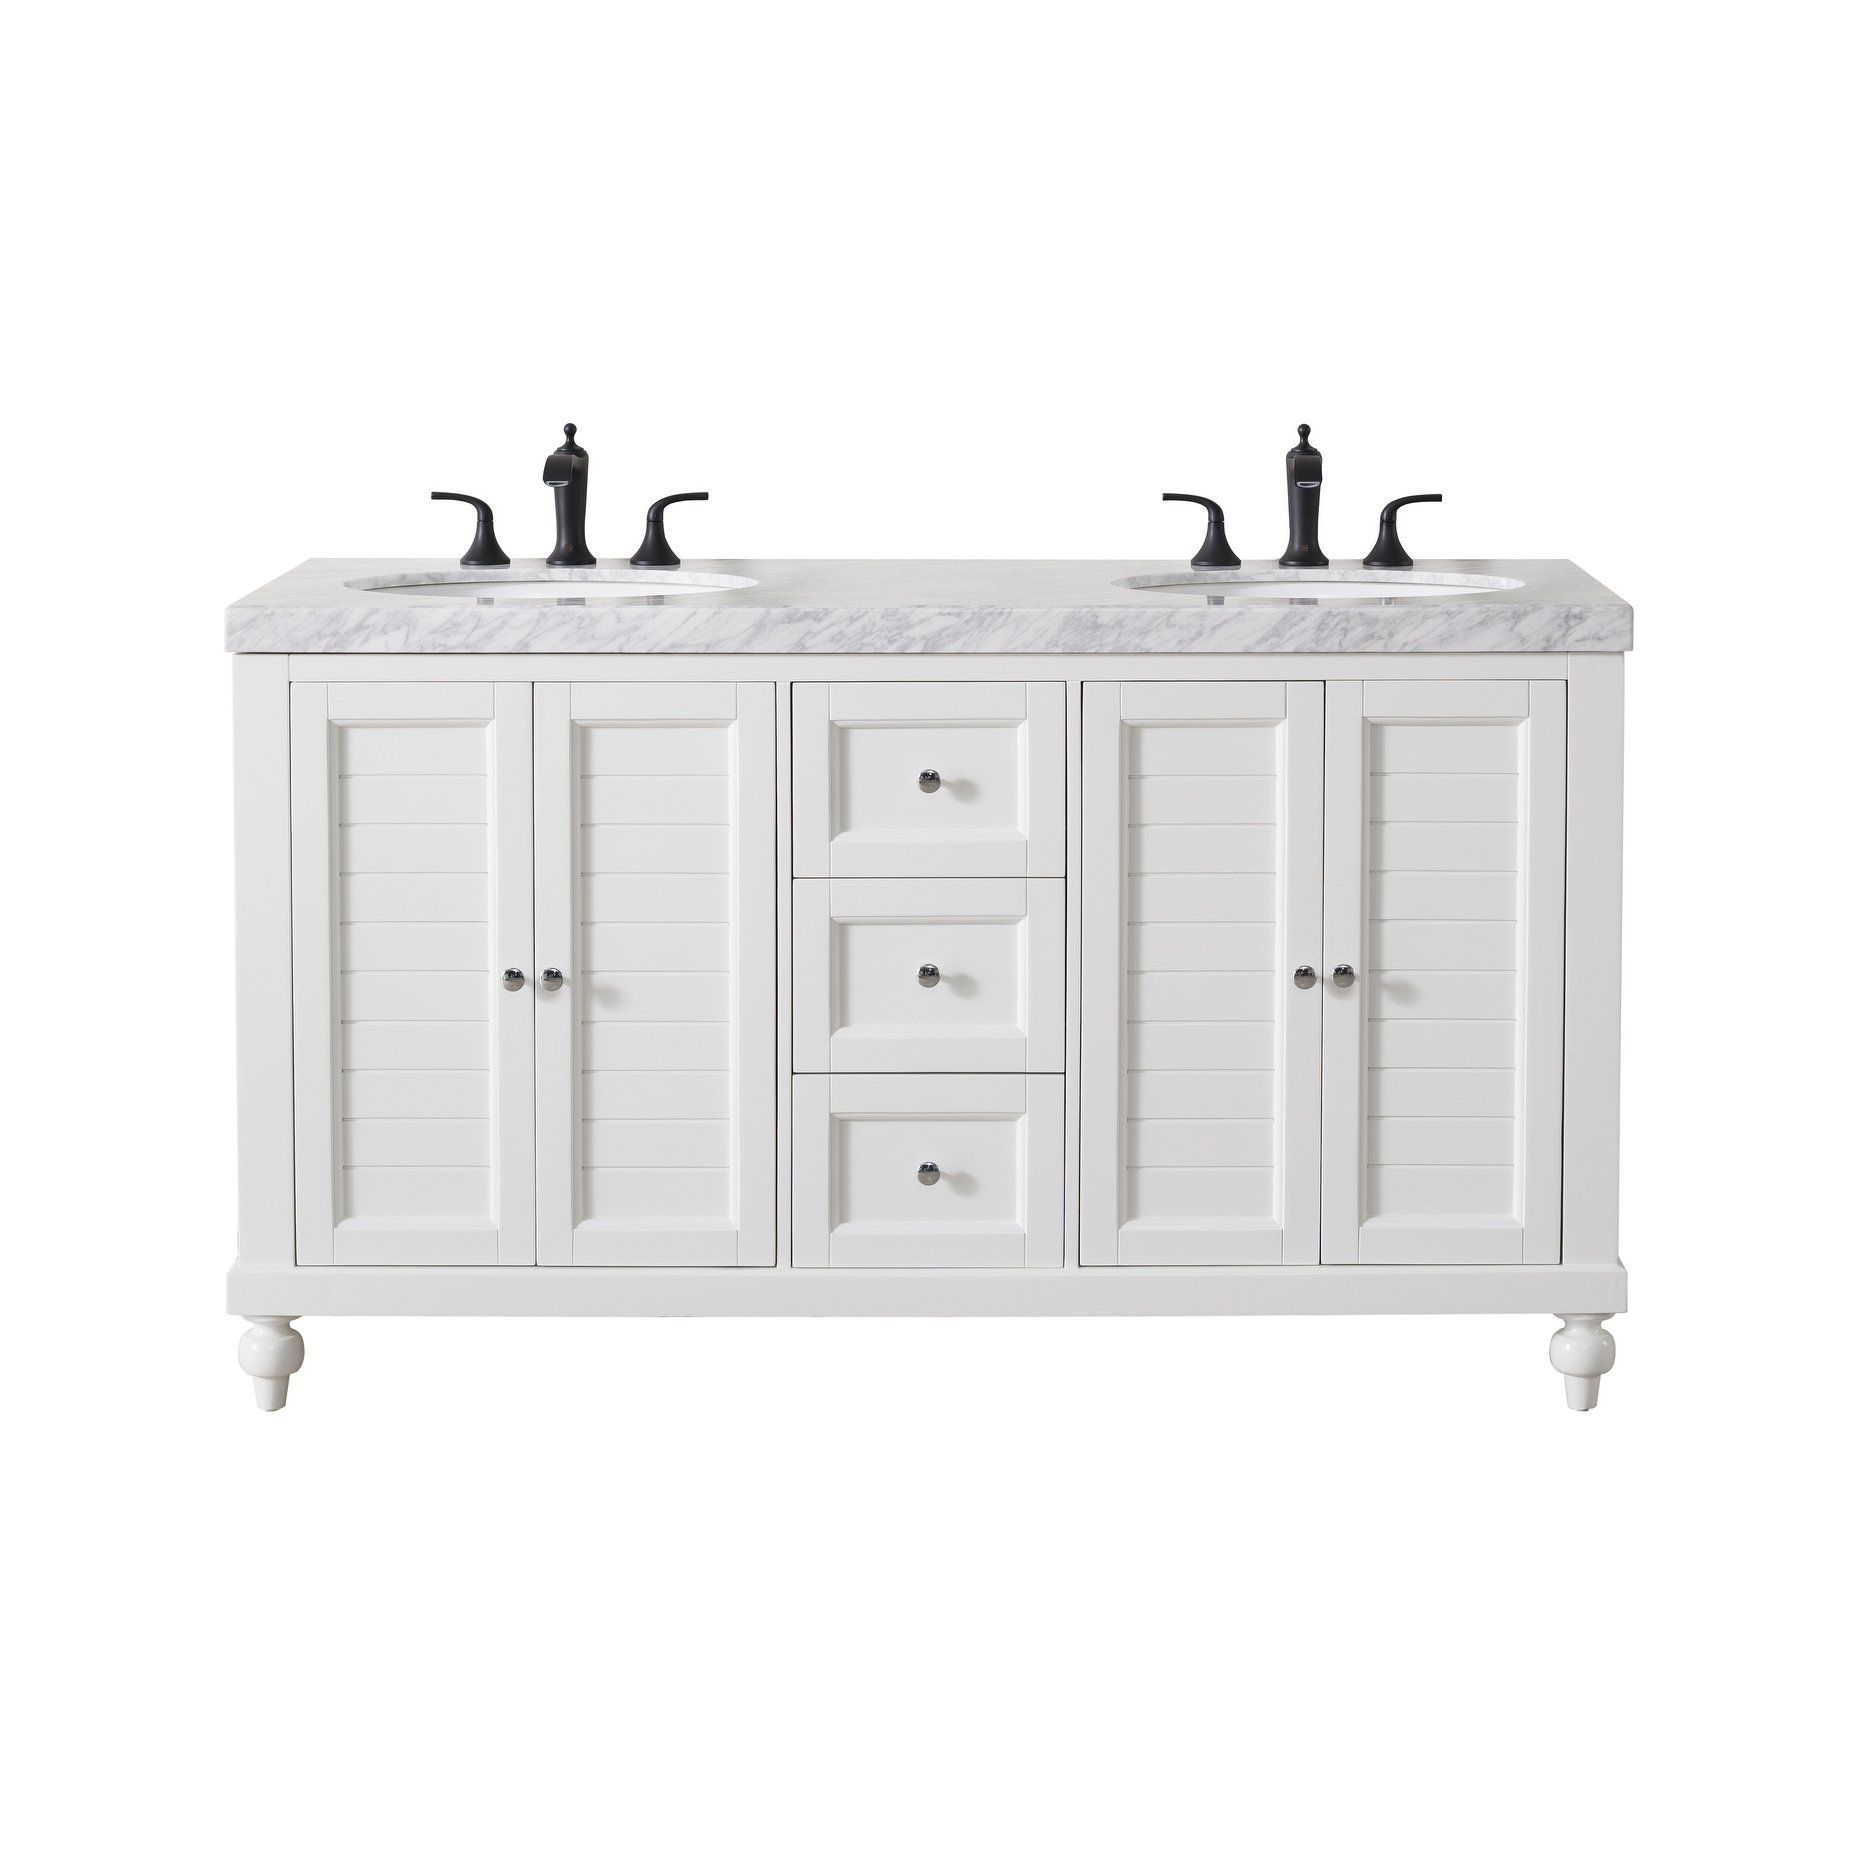 Stufurhome Kent 60 Inch White Double Sink Bathroom Vanity With